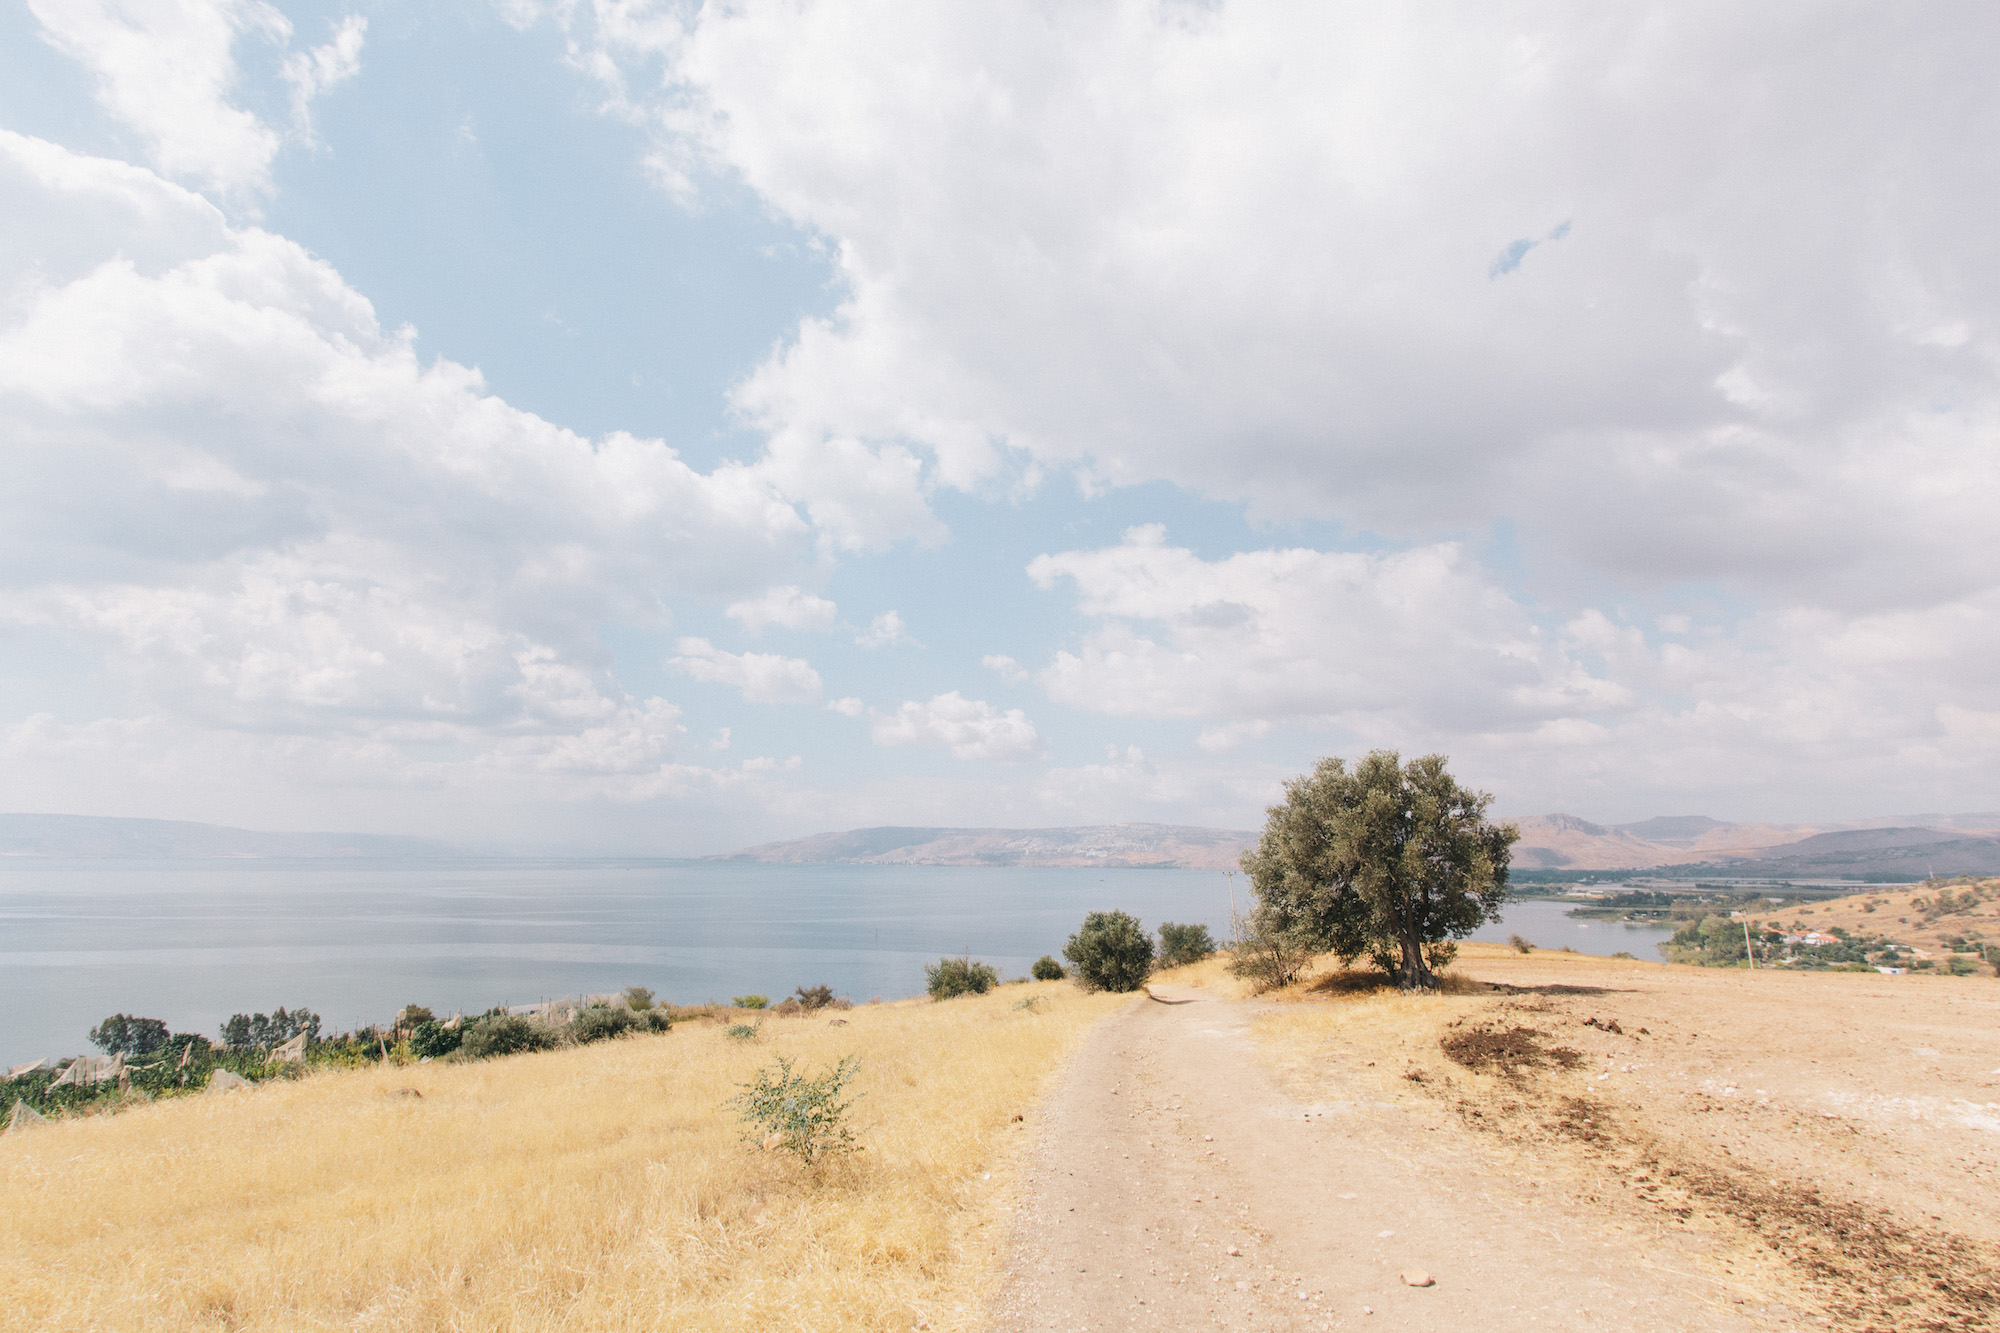 Galilee & the Dead Sea - On day 3/4 we drove down to Lake Galilee & then the Dead Sea to experience some of the incredible beauty the area has to offer, but also to visit some amazing historical places that are mentioned throughout the Bible